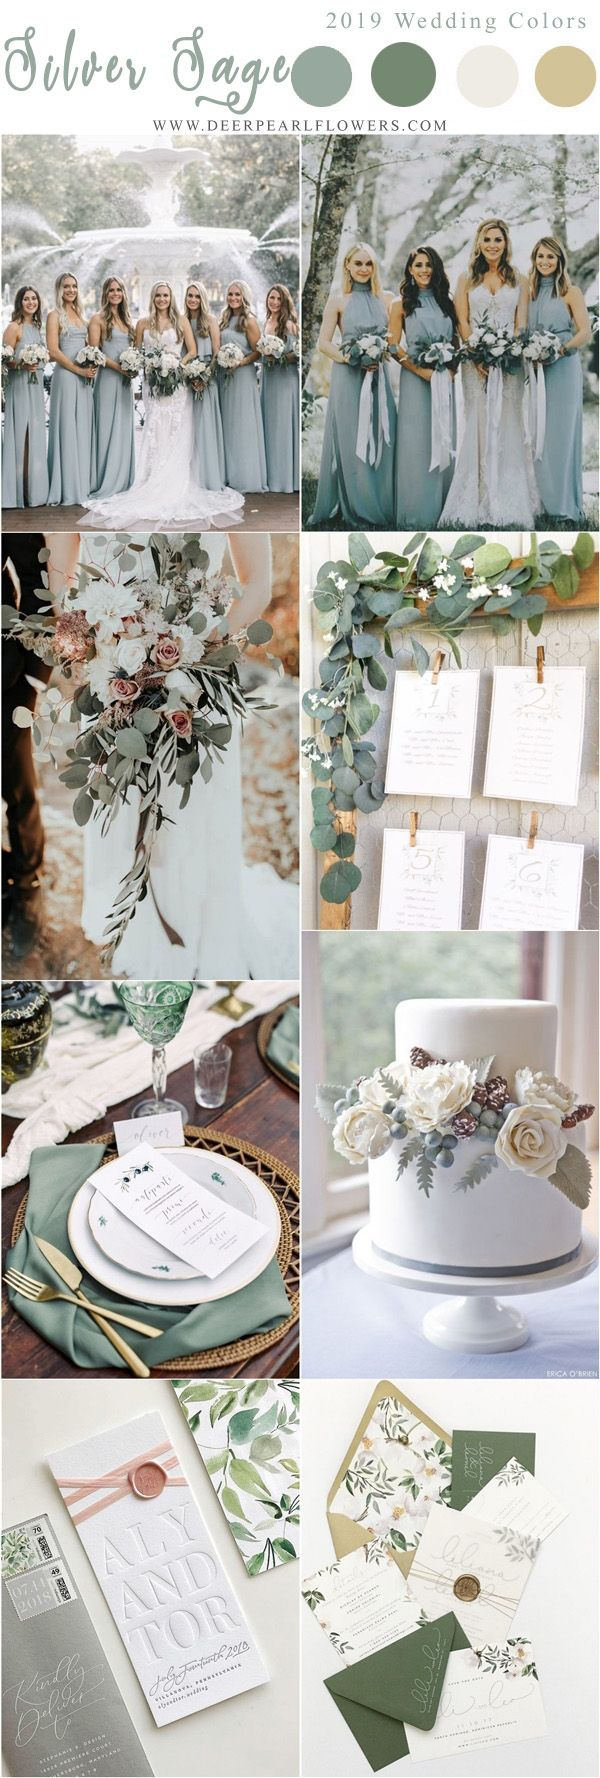 Top 10 Ideas for Wedding Color Schemes for 2019 Trends